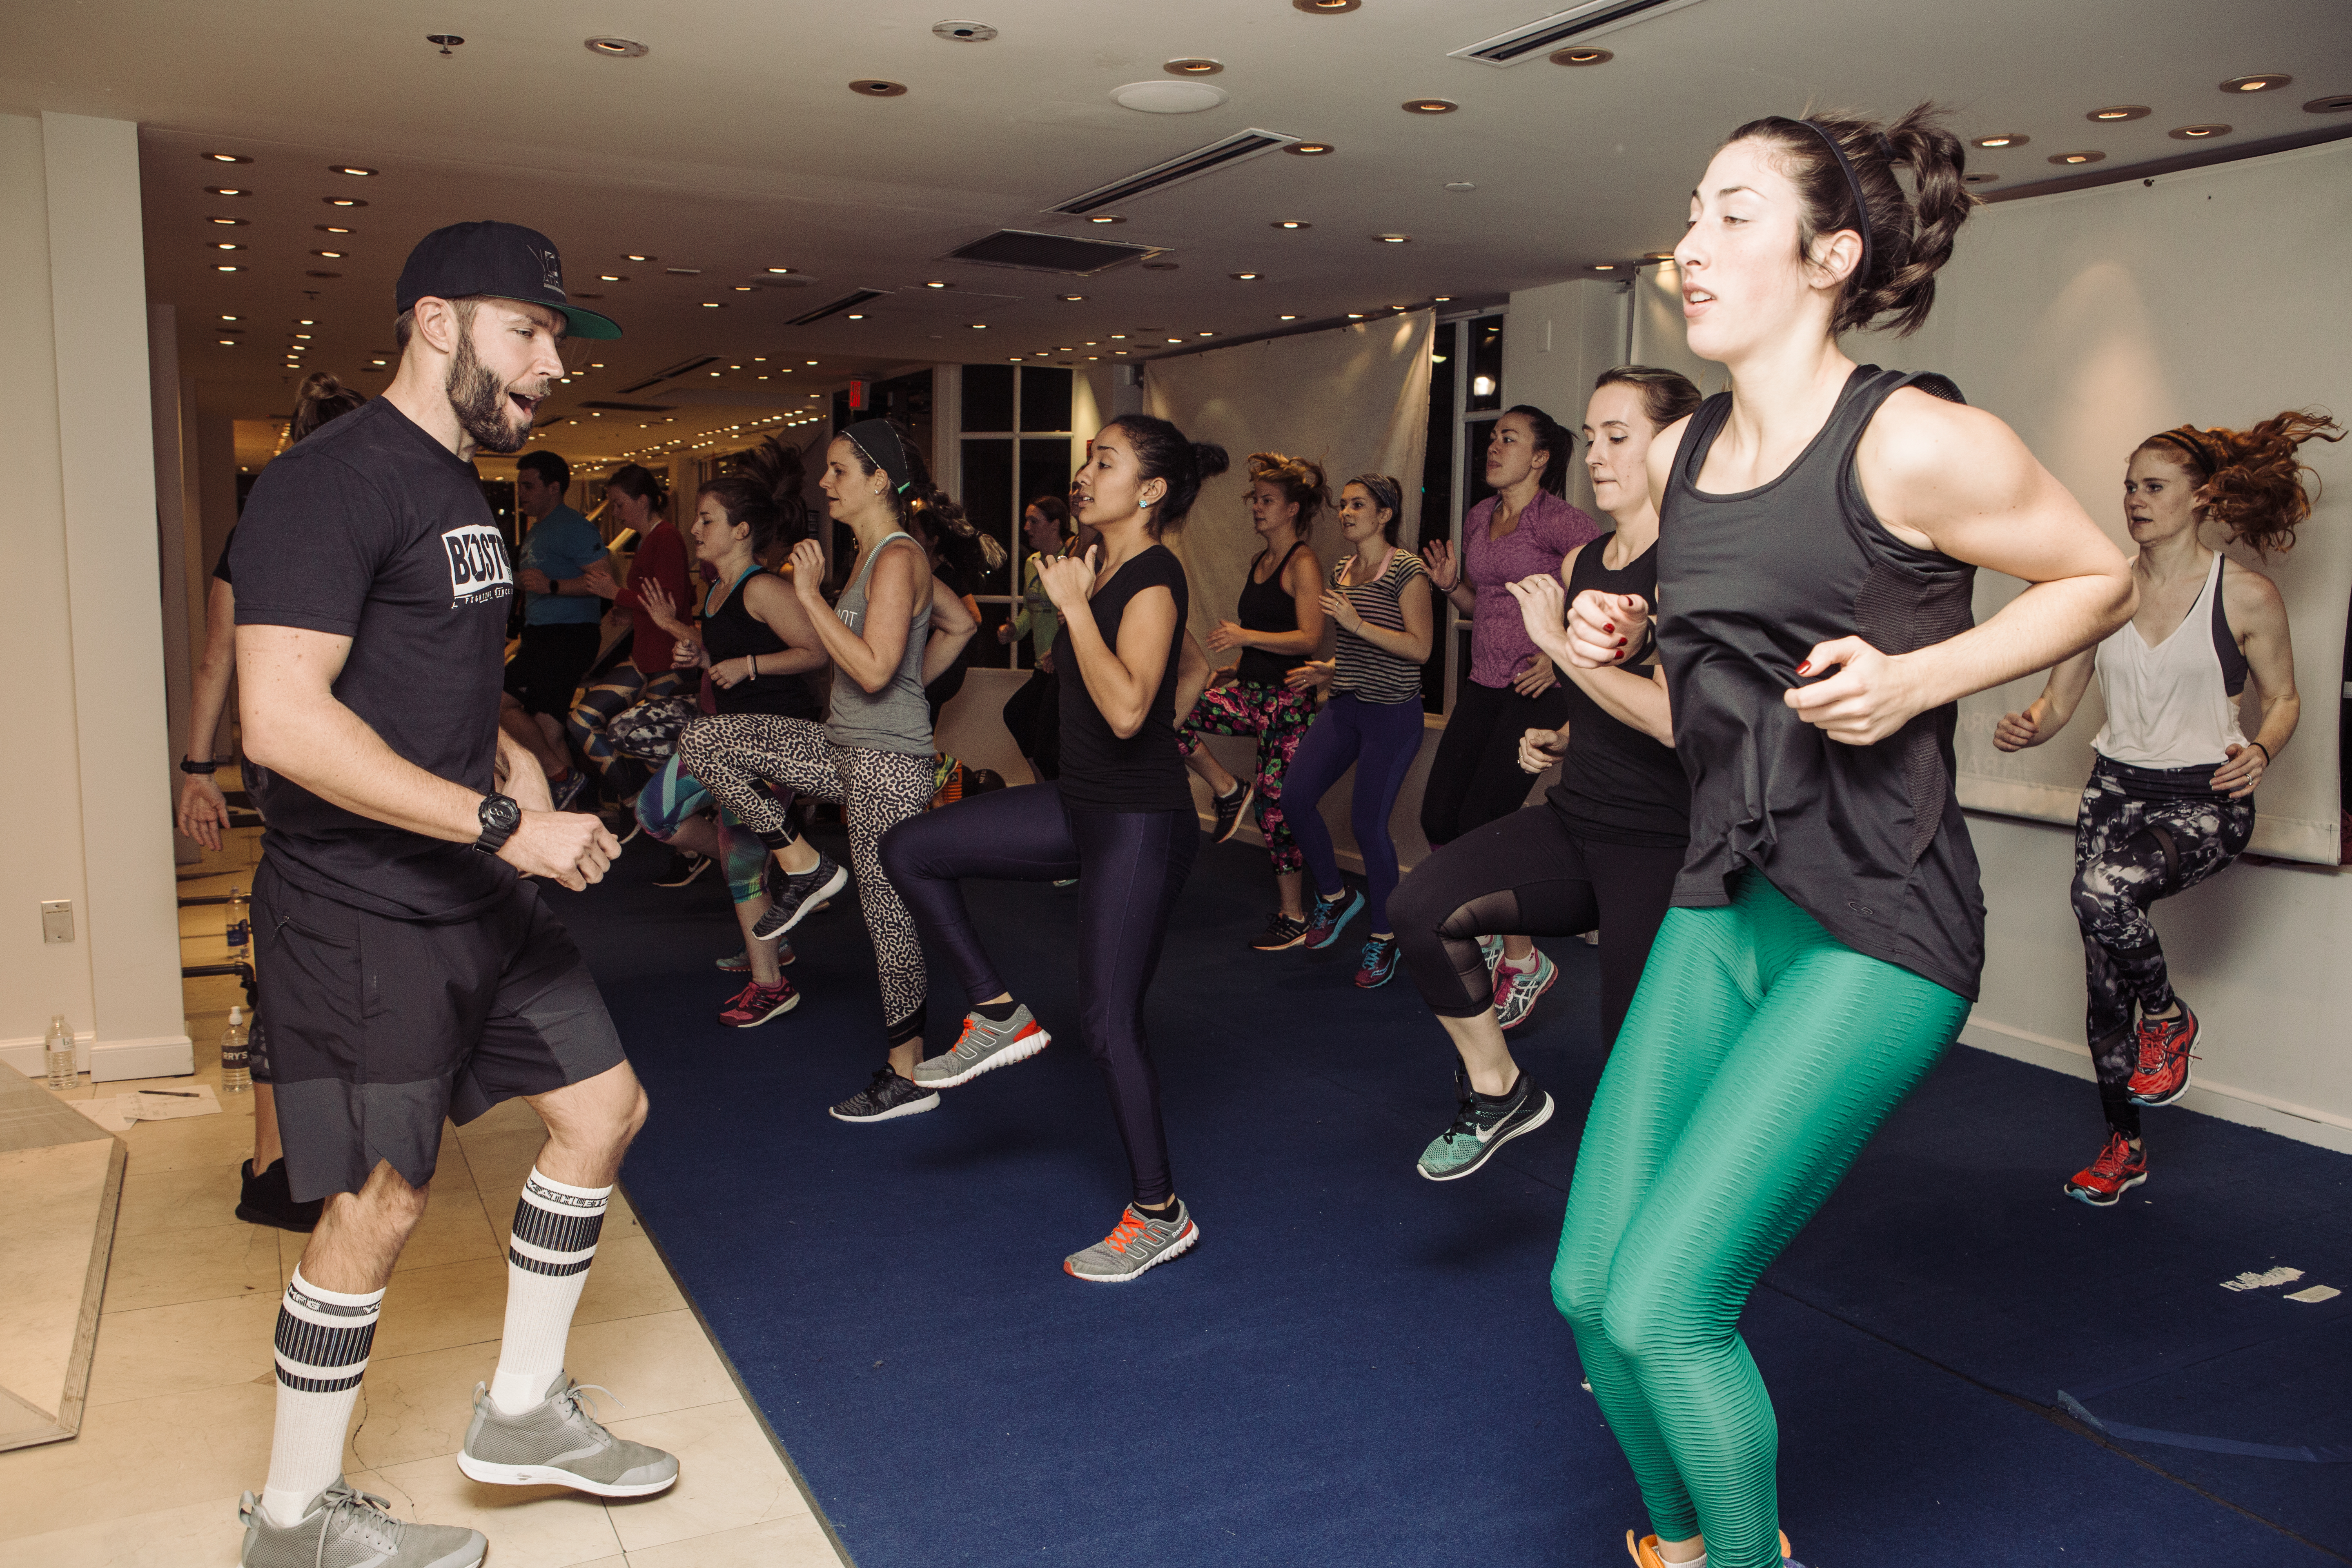 Aerobic class taking place at York Atheltics' pop-up store in Boston last November.